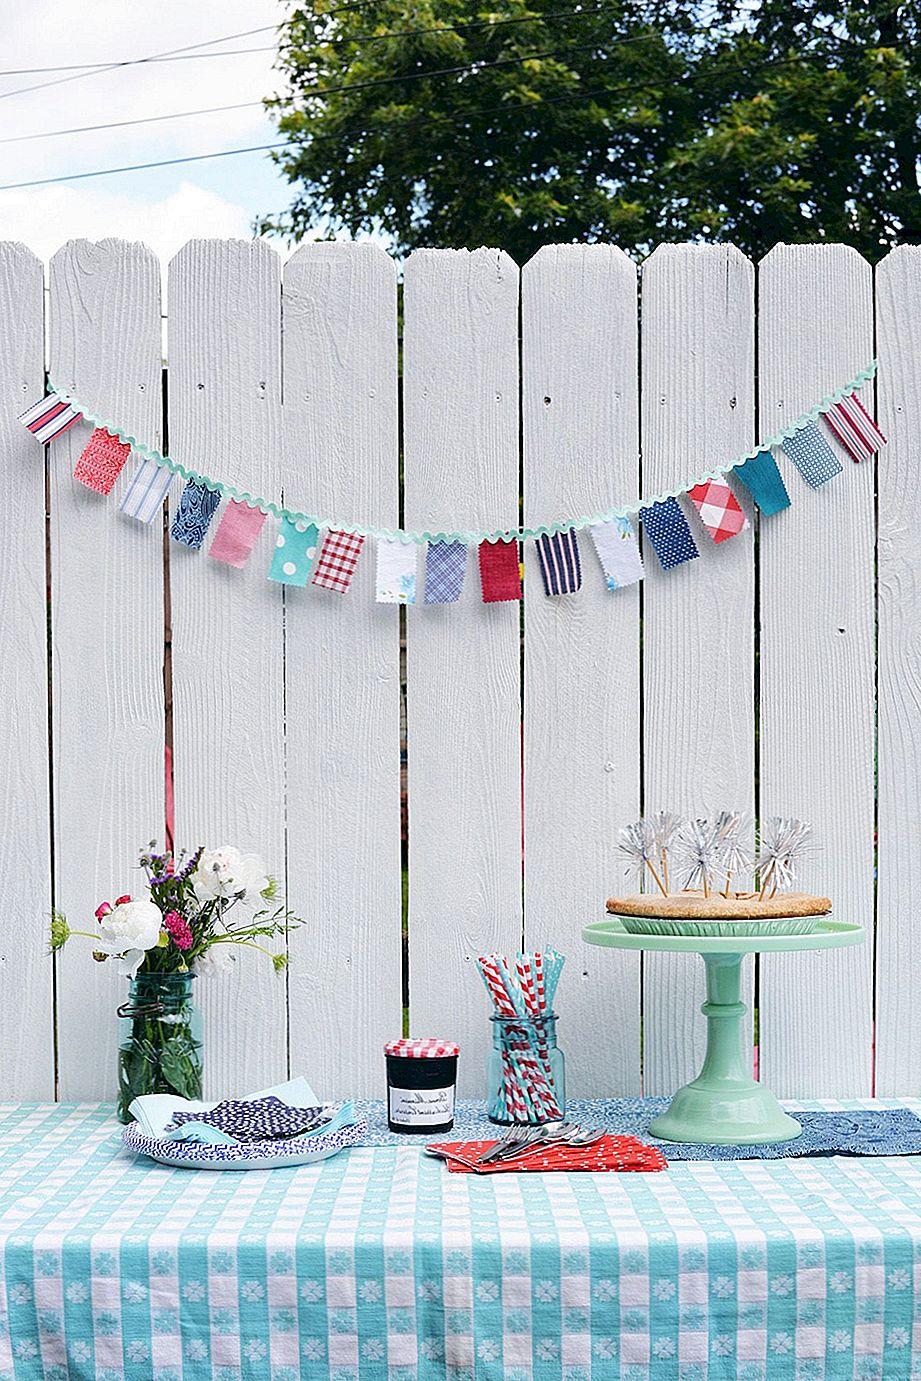 DIY Red, White ja Blue Fabric Garland